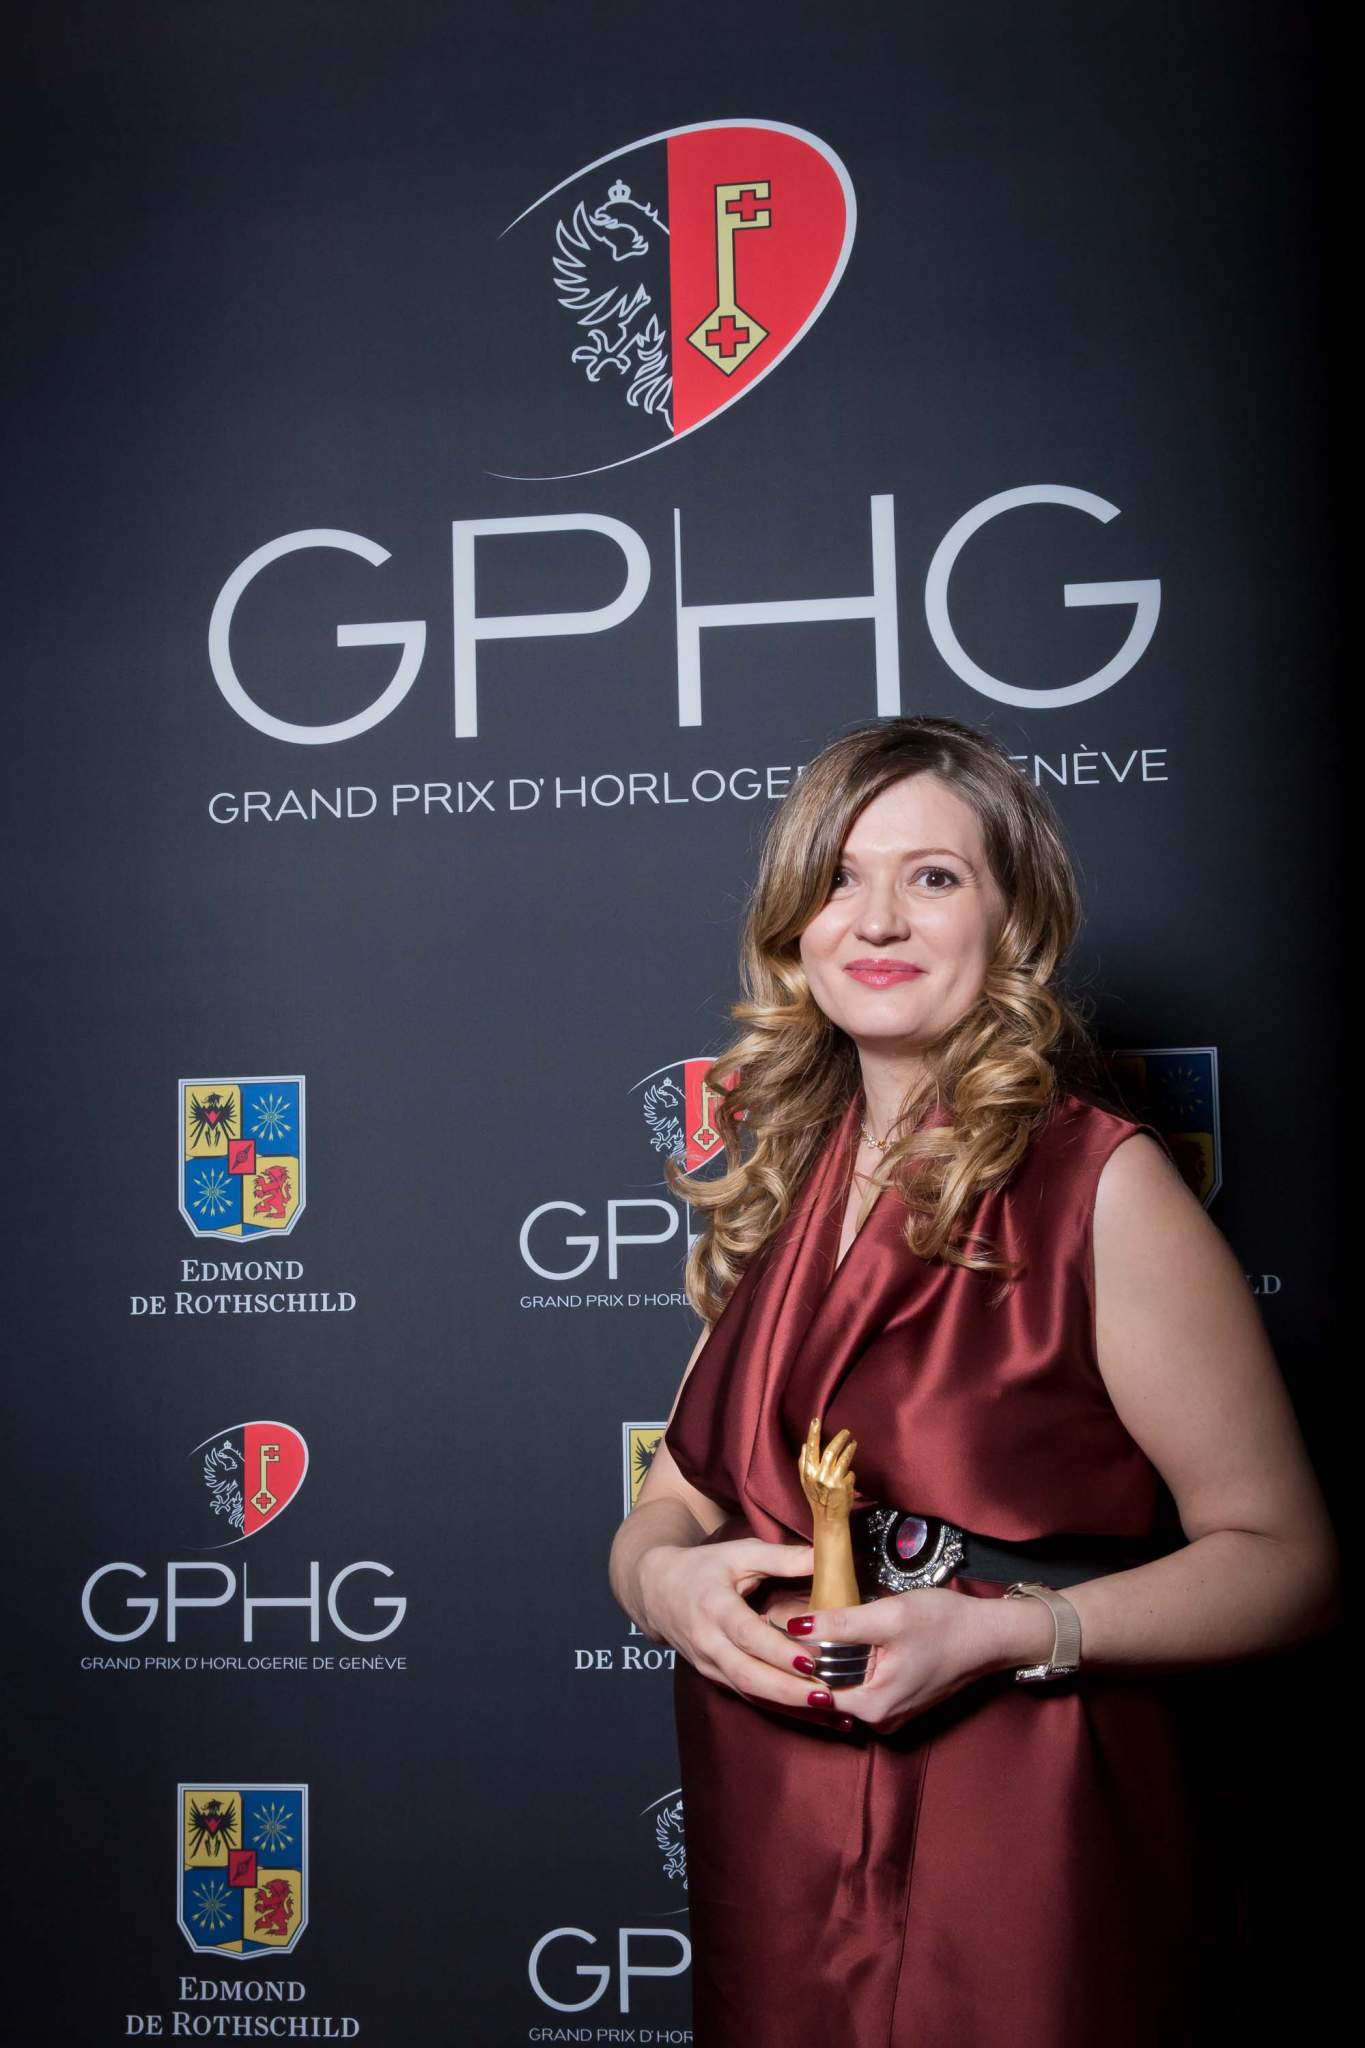 Brigitte Morina, CEO of DeLaneau, winner of the Ladies' Watch Prize 2013